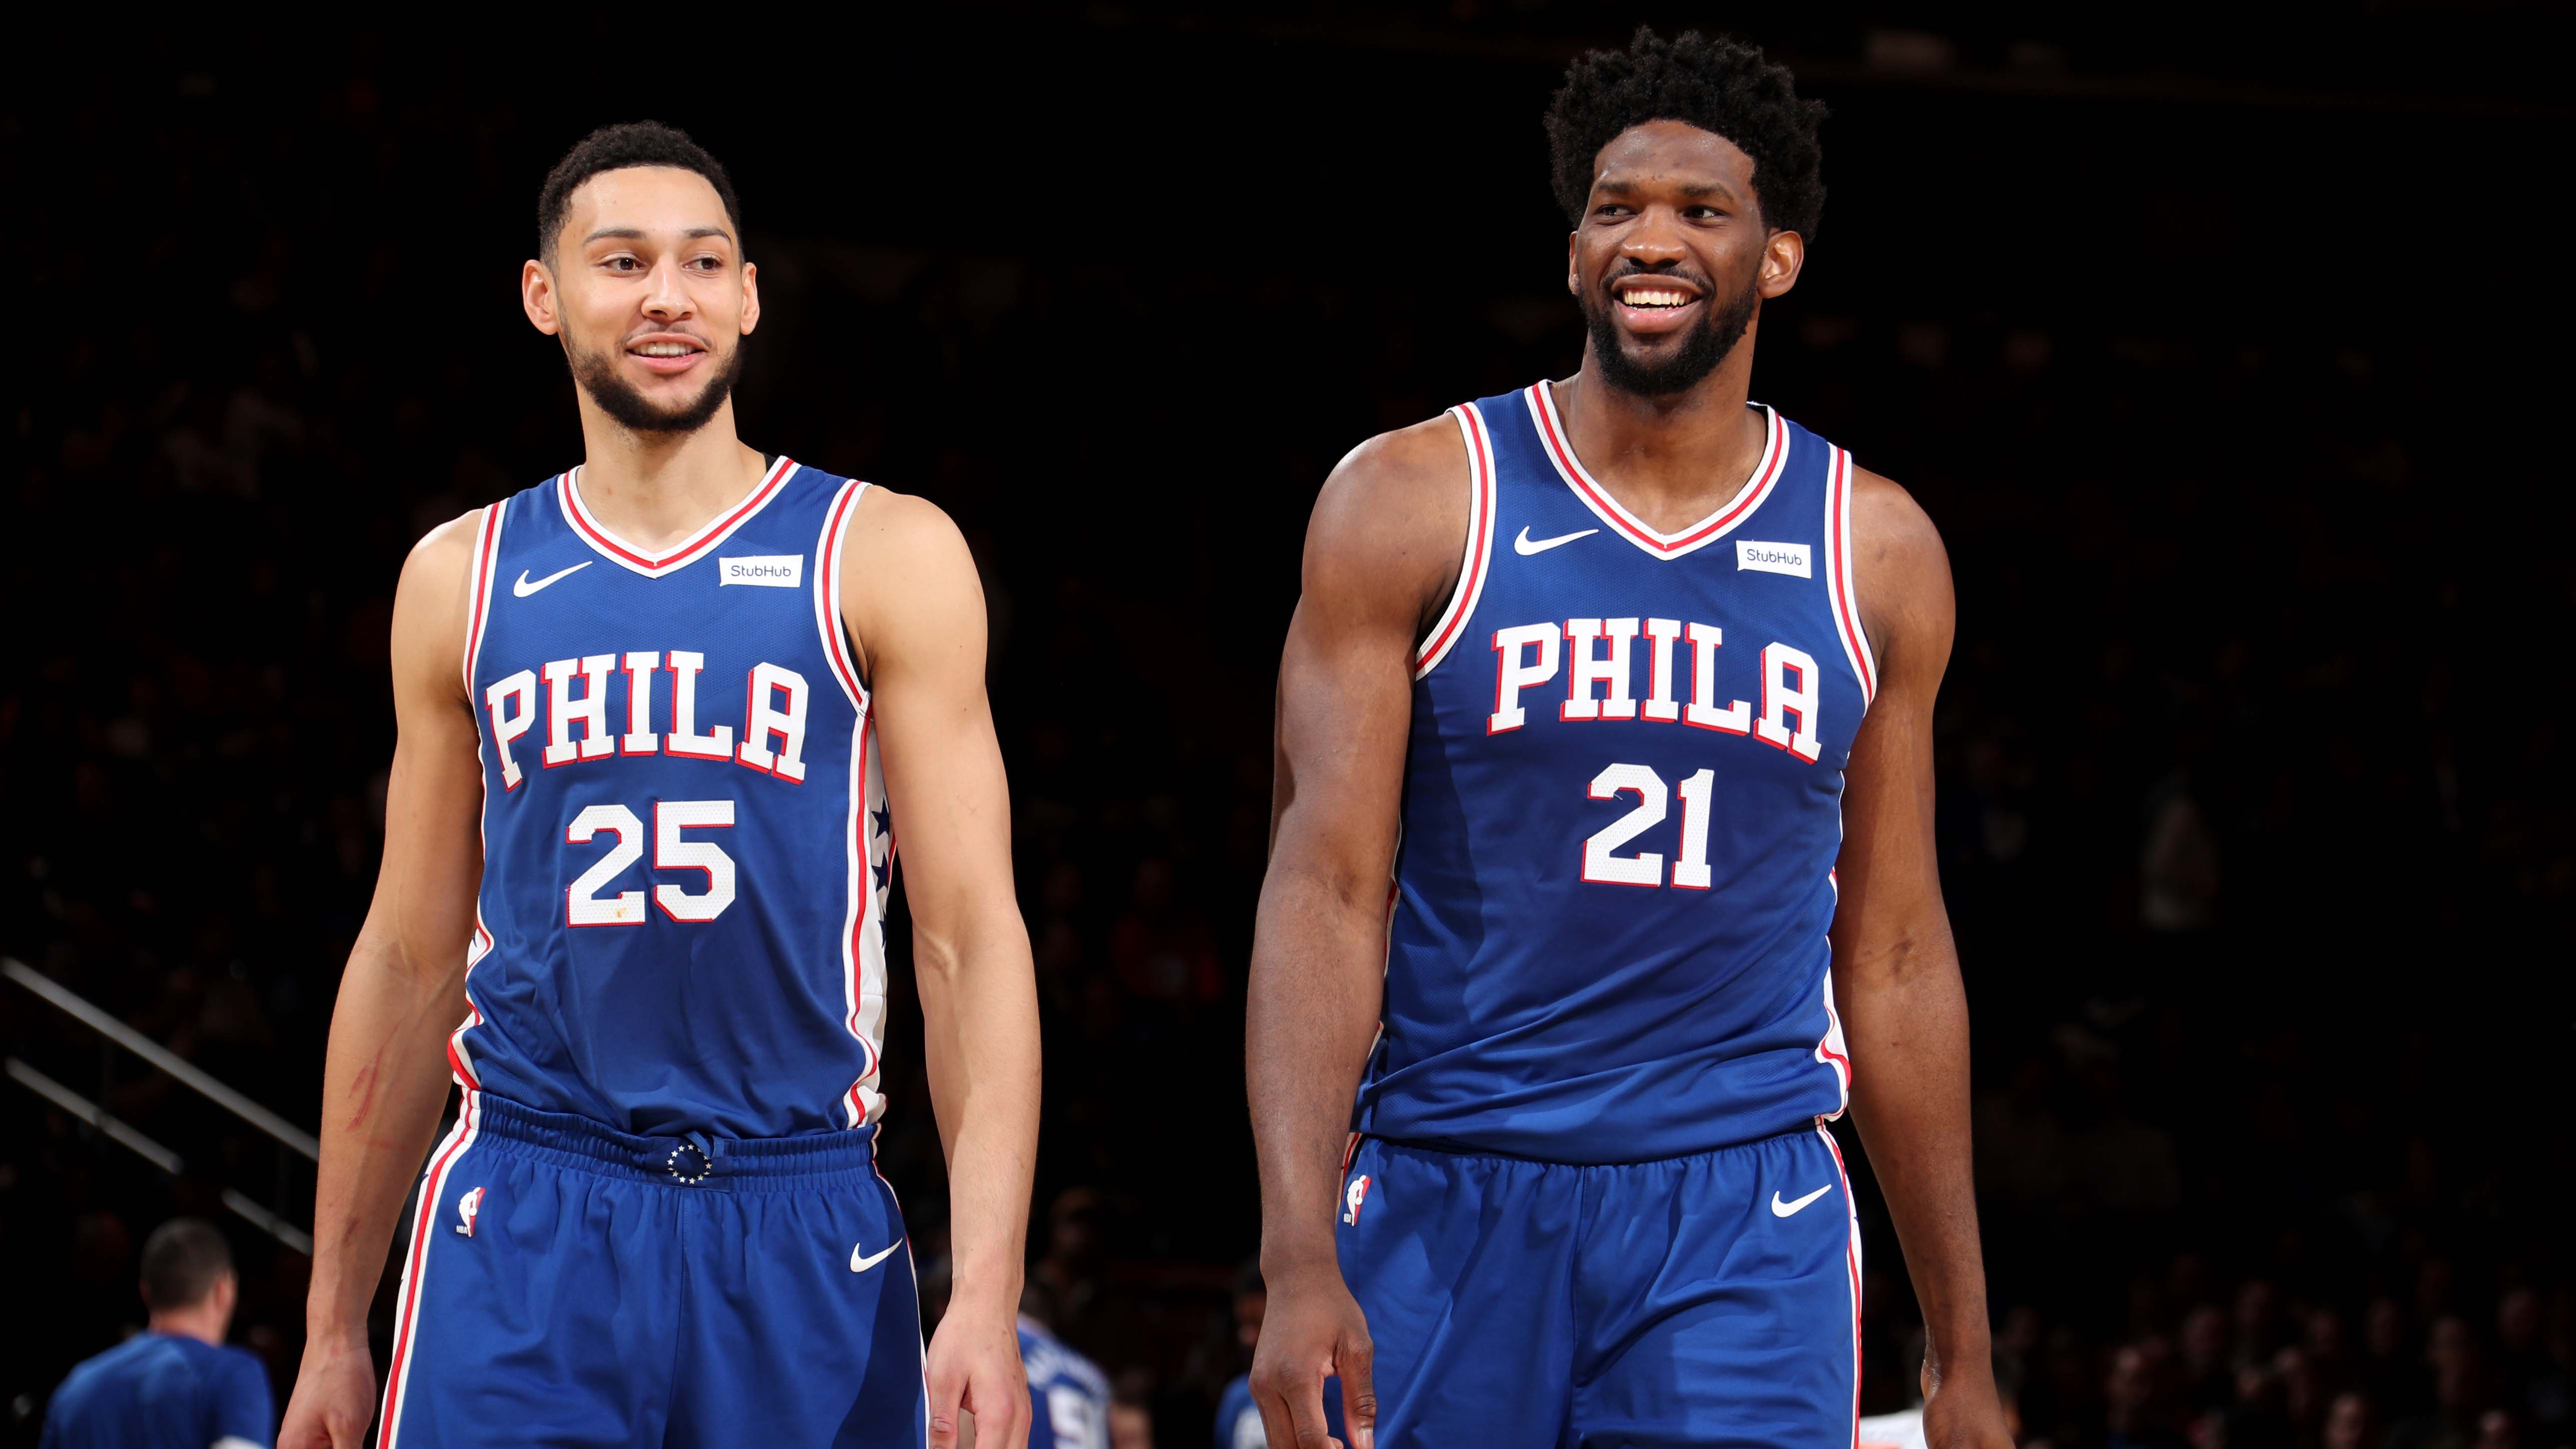 Nba Unveils 2019 20 Game And National Television Schedules